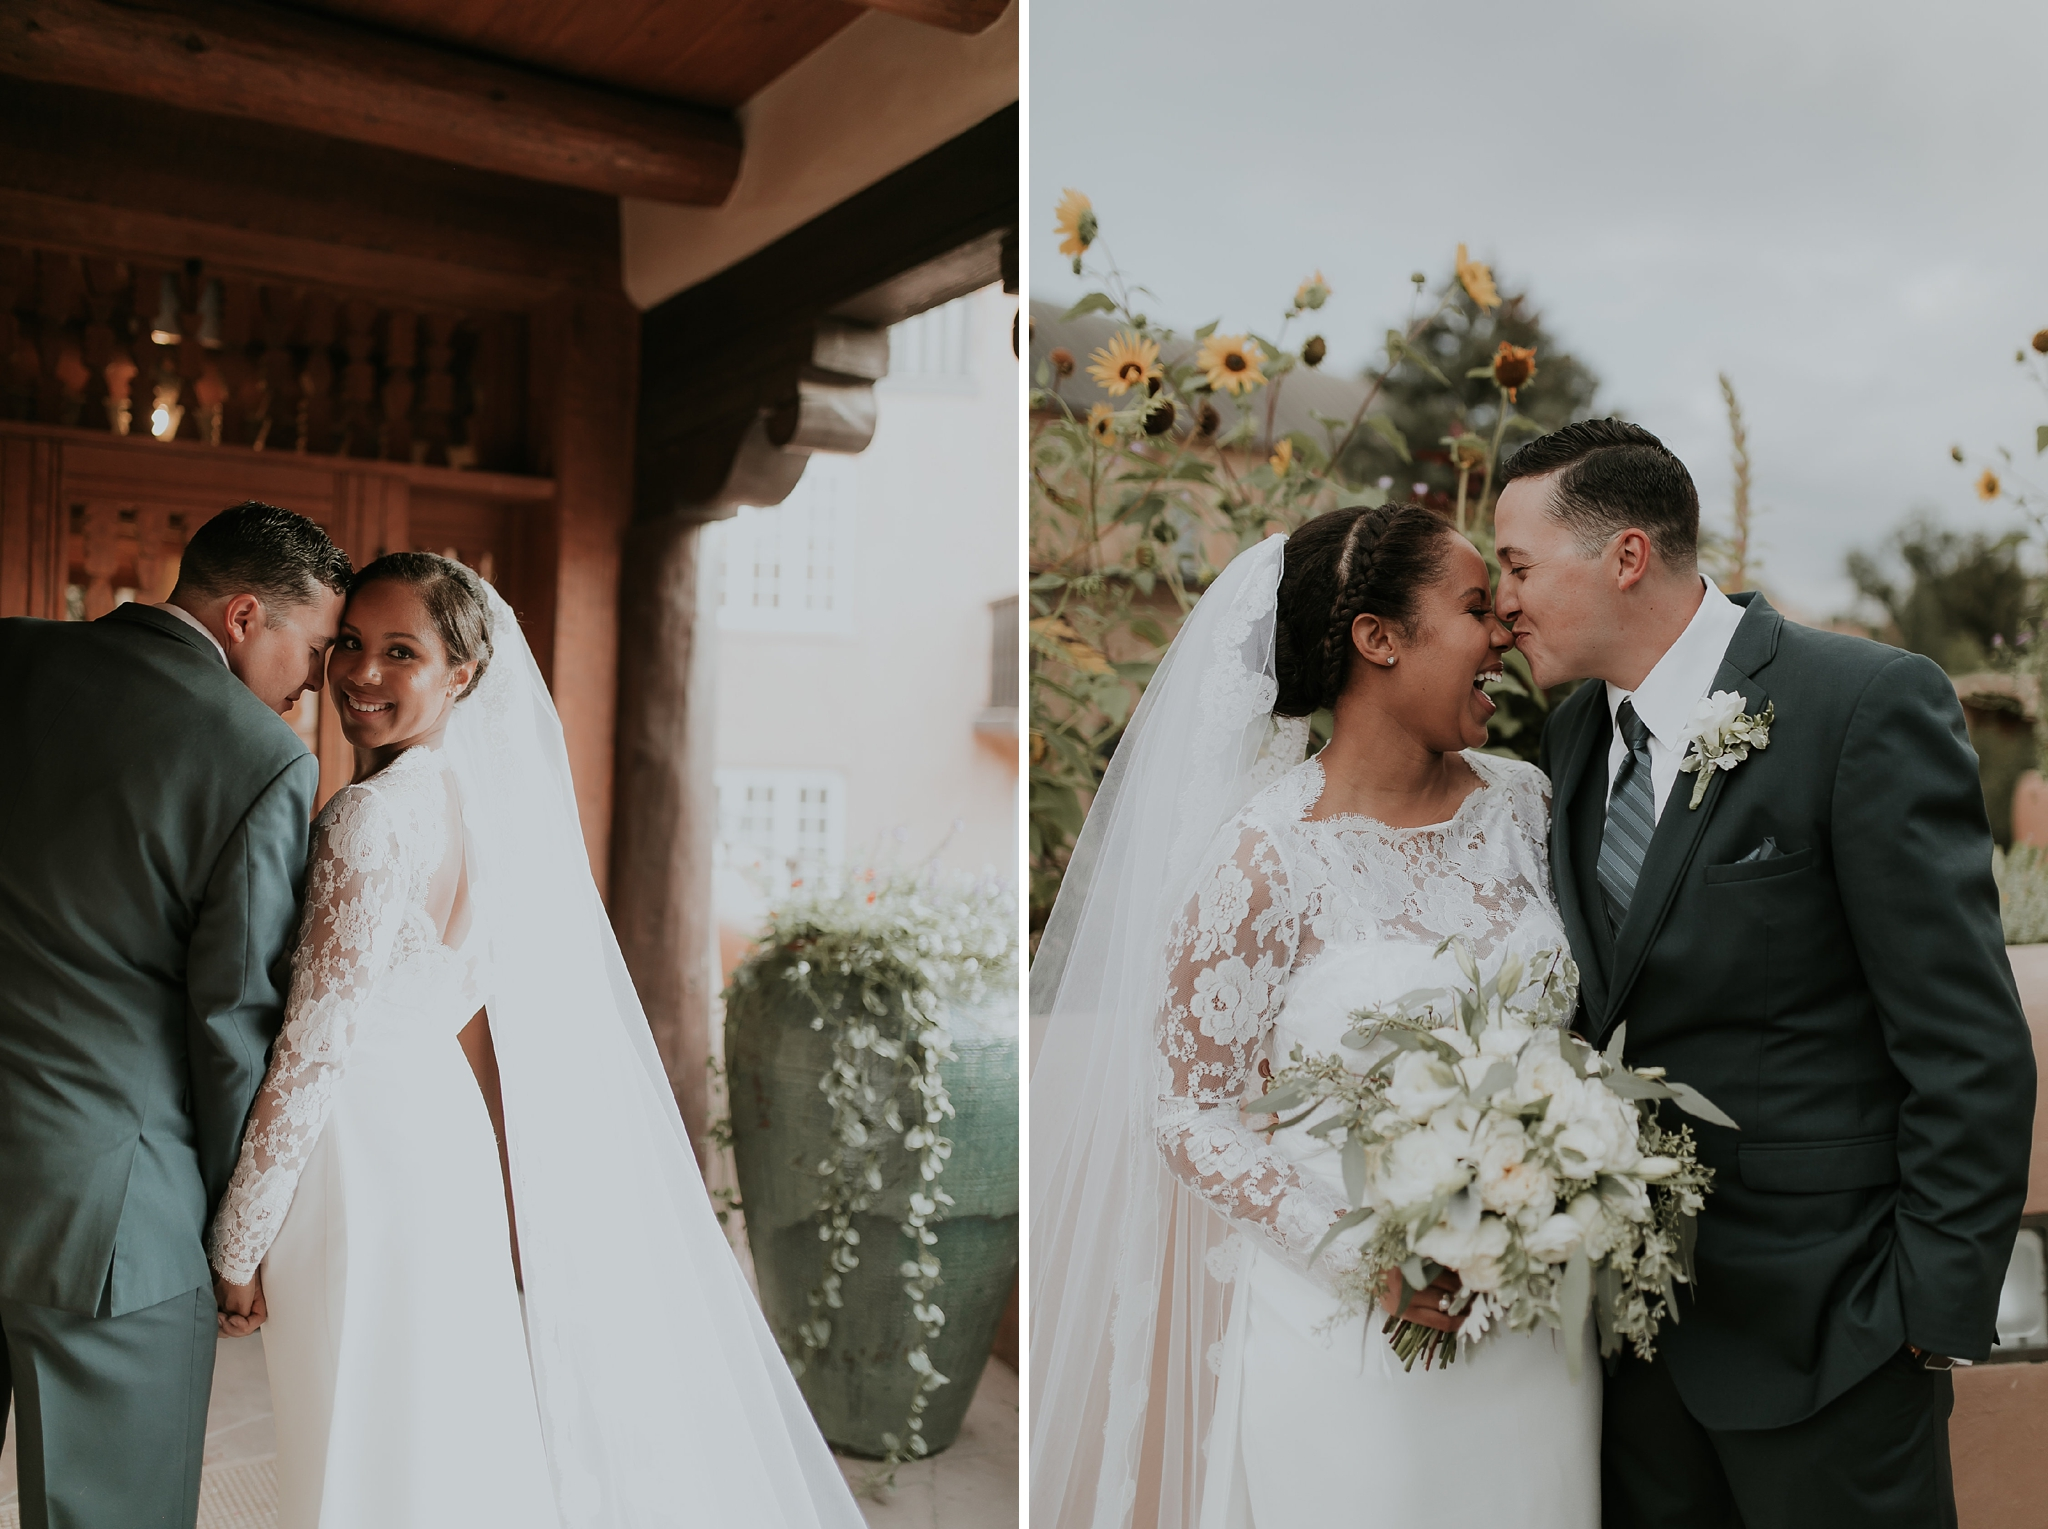 Alicia+lucia+photography+-+albuquerque+wedding+photographer+-+santa+fe+wedding+photography+-+new+mexico+wedding+photographer+-+new+mexico+wedding+-+wedding+makeup+-+makeup+artist+-+wedding+makeup+artist+-+bridal+makeup_0058.jpg